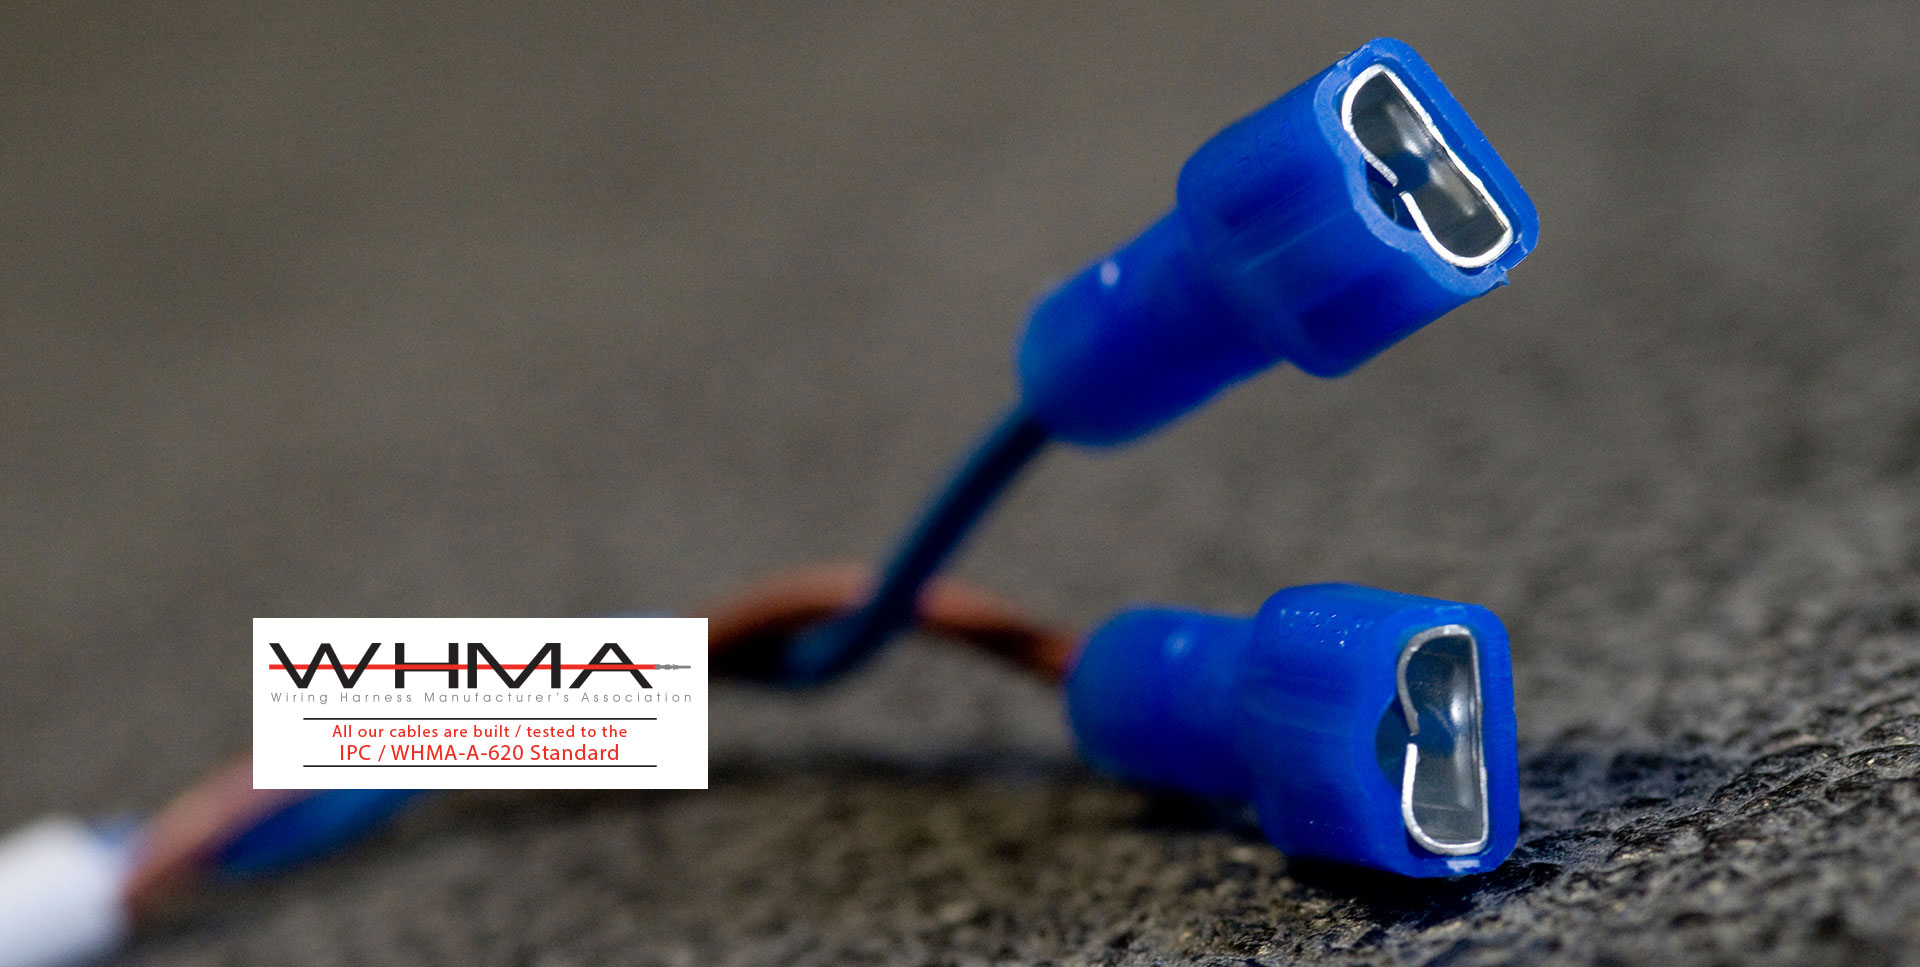 Ipc Whma A 620 Revision B Wire Harnesses Cable Assemblies Plastic Wiring Harness View Larger Image